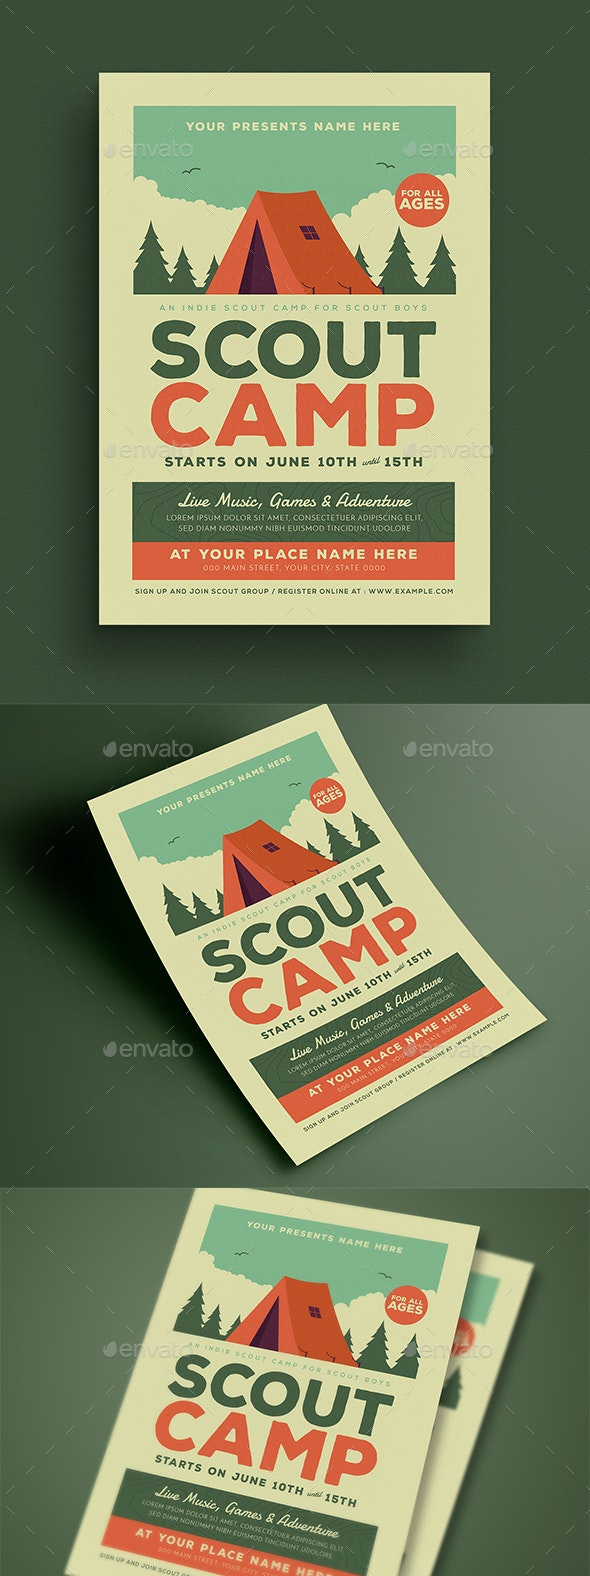 Scout Camp Event Flyer - Flyers Print Templates